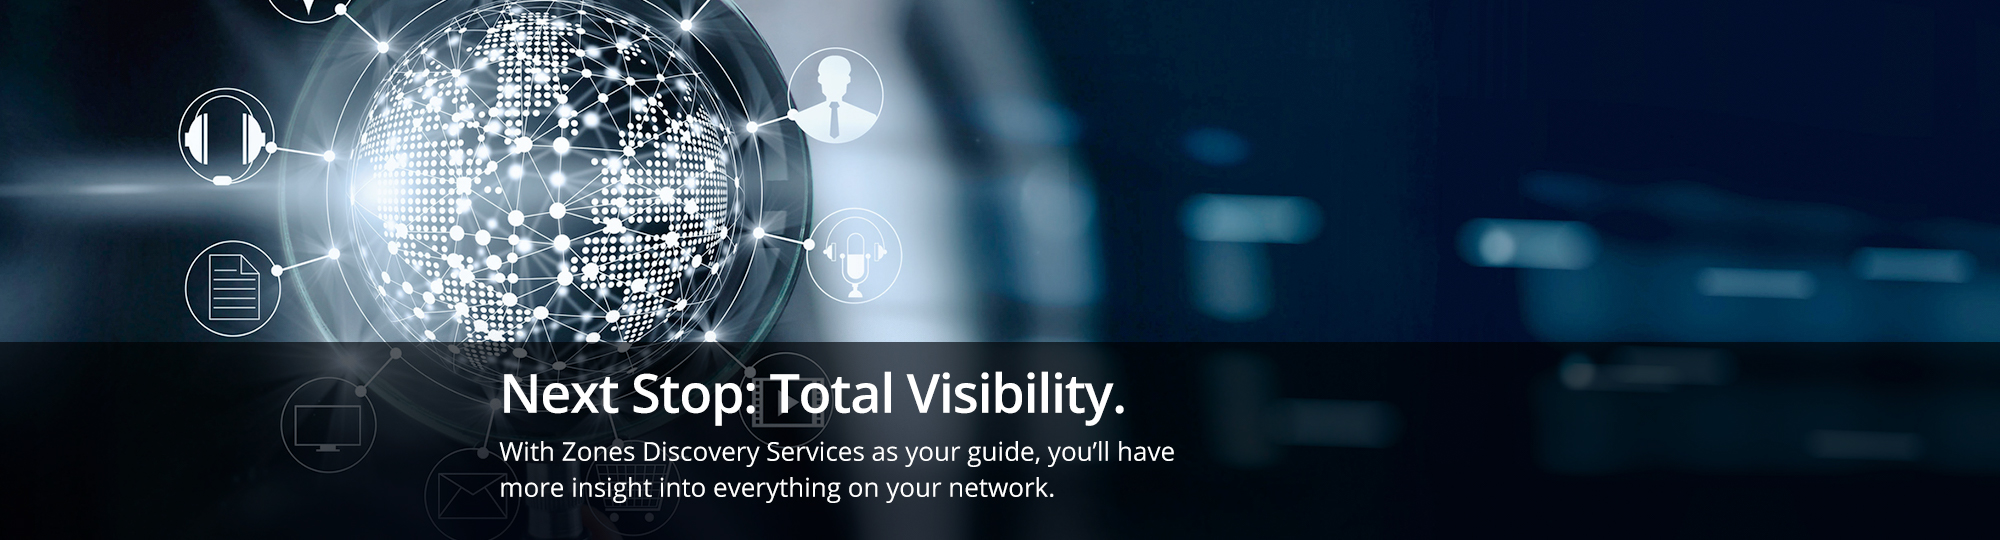 Next Stop: Total Visibility. With Zones Discovery Services as your guide, you?ll have more insight into everything on your network.